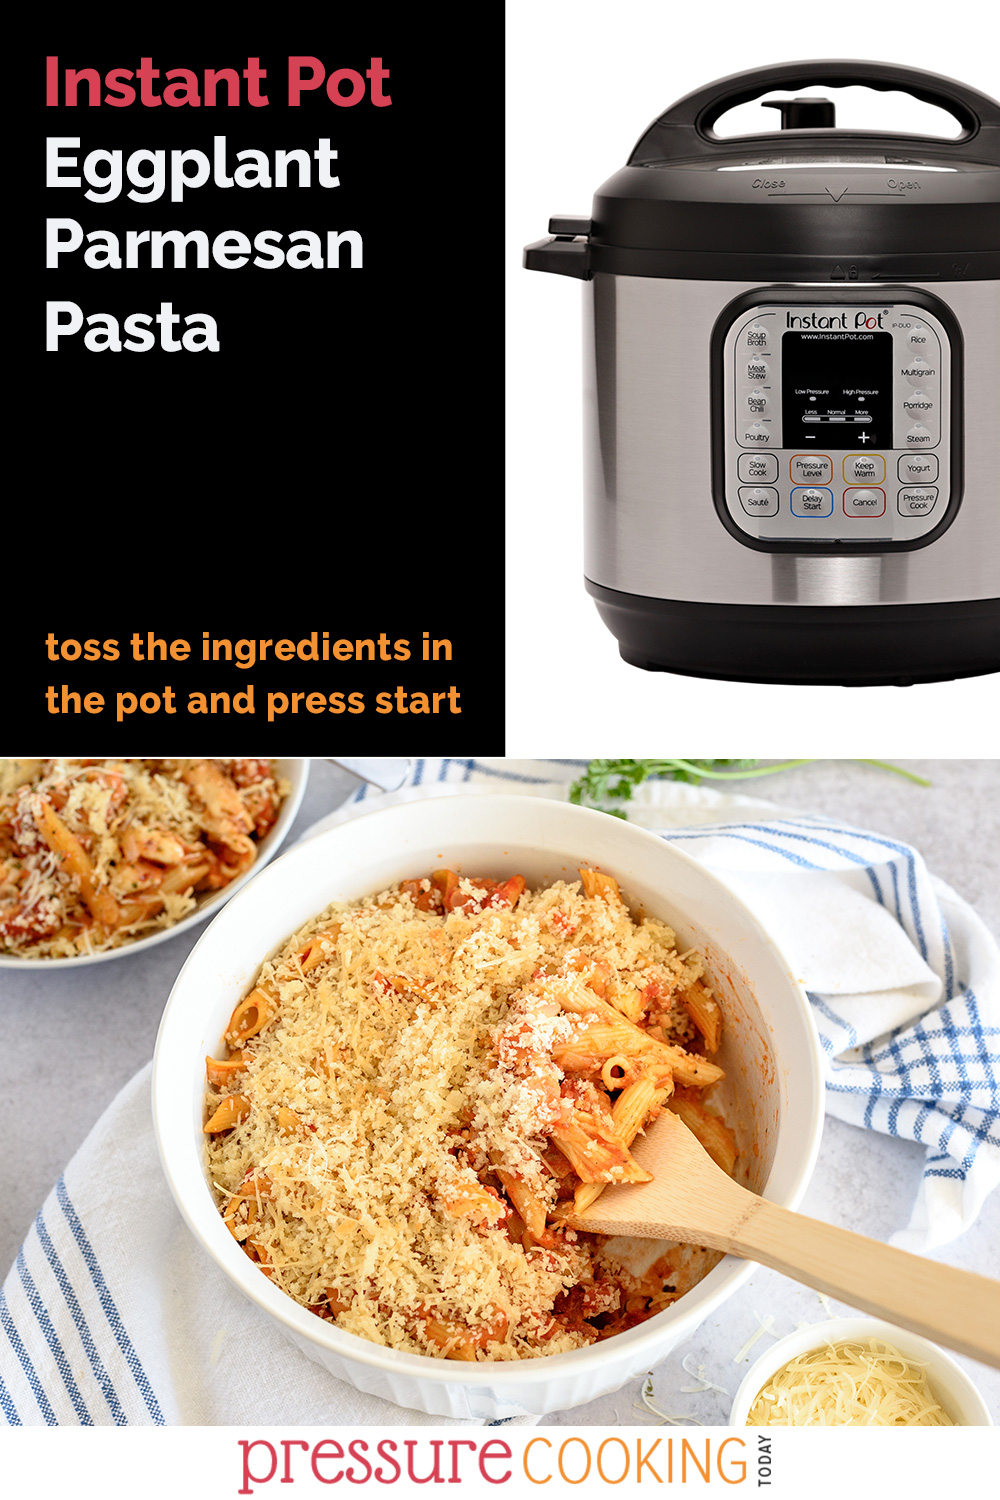 EASY Dump and Go Instant Pot Recipe | Instant Pot Eggplant Parmesan Pasta via @PressureCook2da